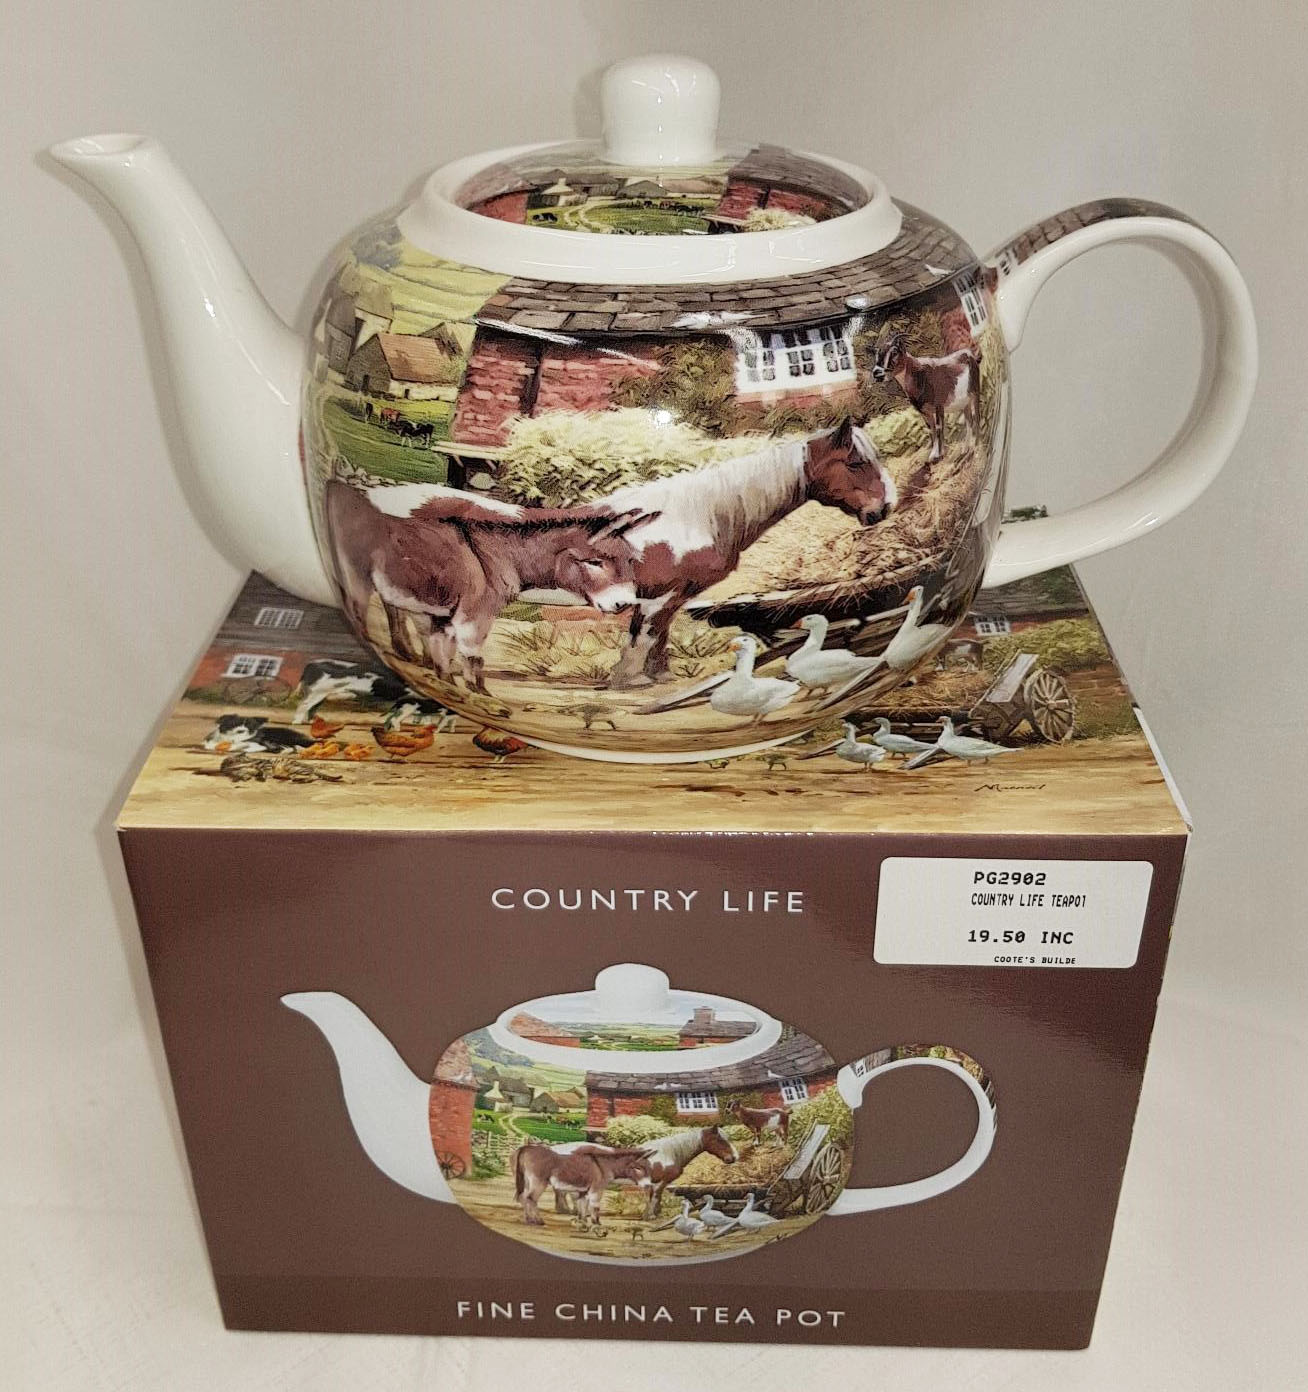 Country Life Teapot